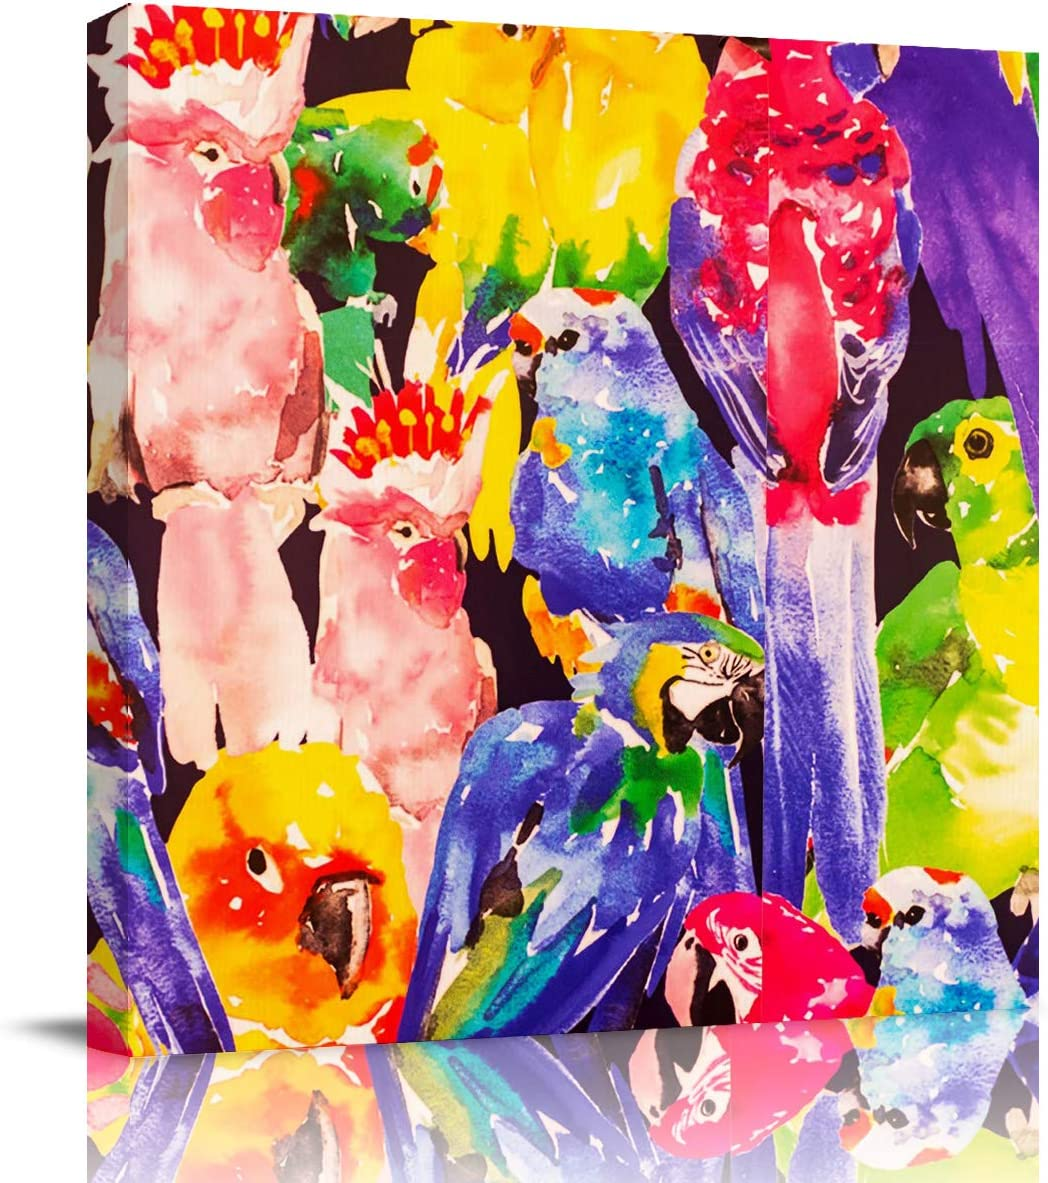 Canvas Wall Art – Hand Painted Style Colorful Parrot Wall Decor Paintings Pictures for Living Room Modern Artwork Stretched and Framed Ready to Hang 24 x 24